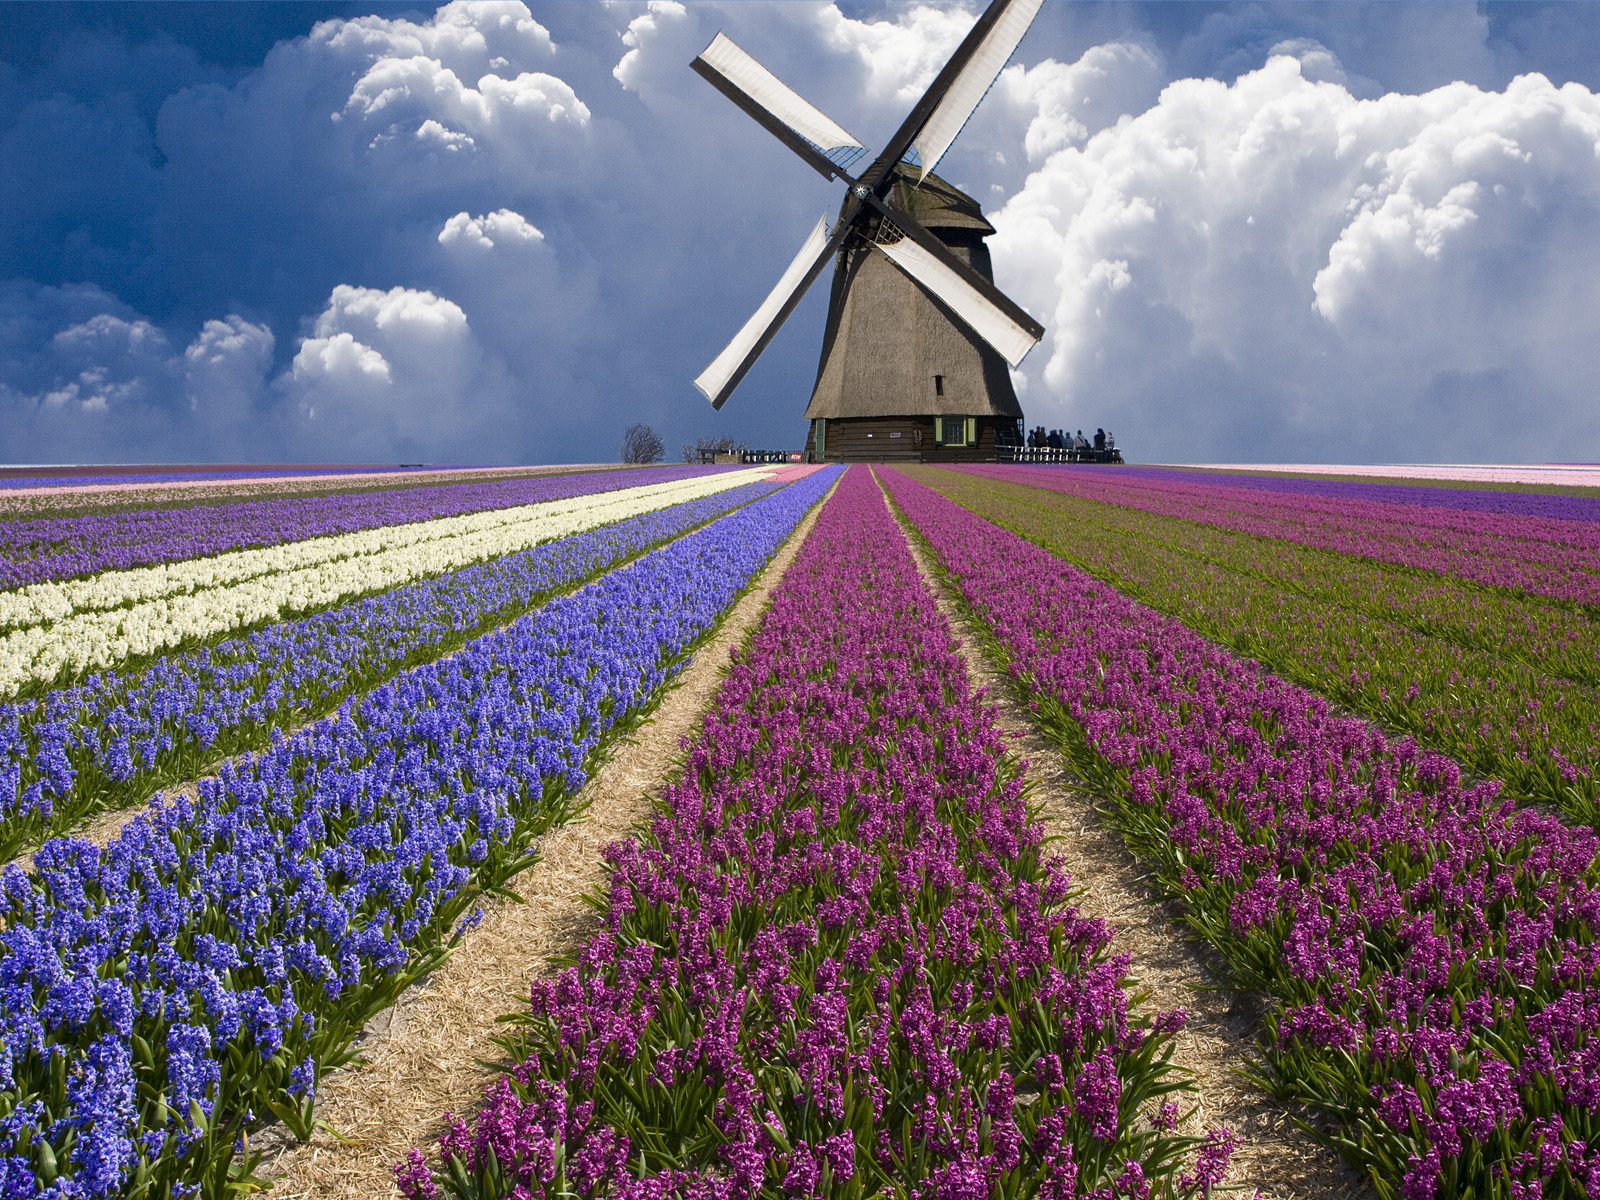 North Holland Province, Netherlands --- Windmill and Flower Field in Holland --- Image by © Jim Zuckerman/Corbis